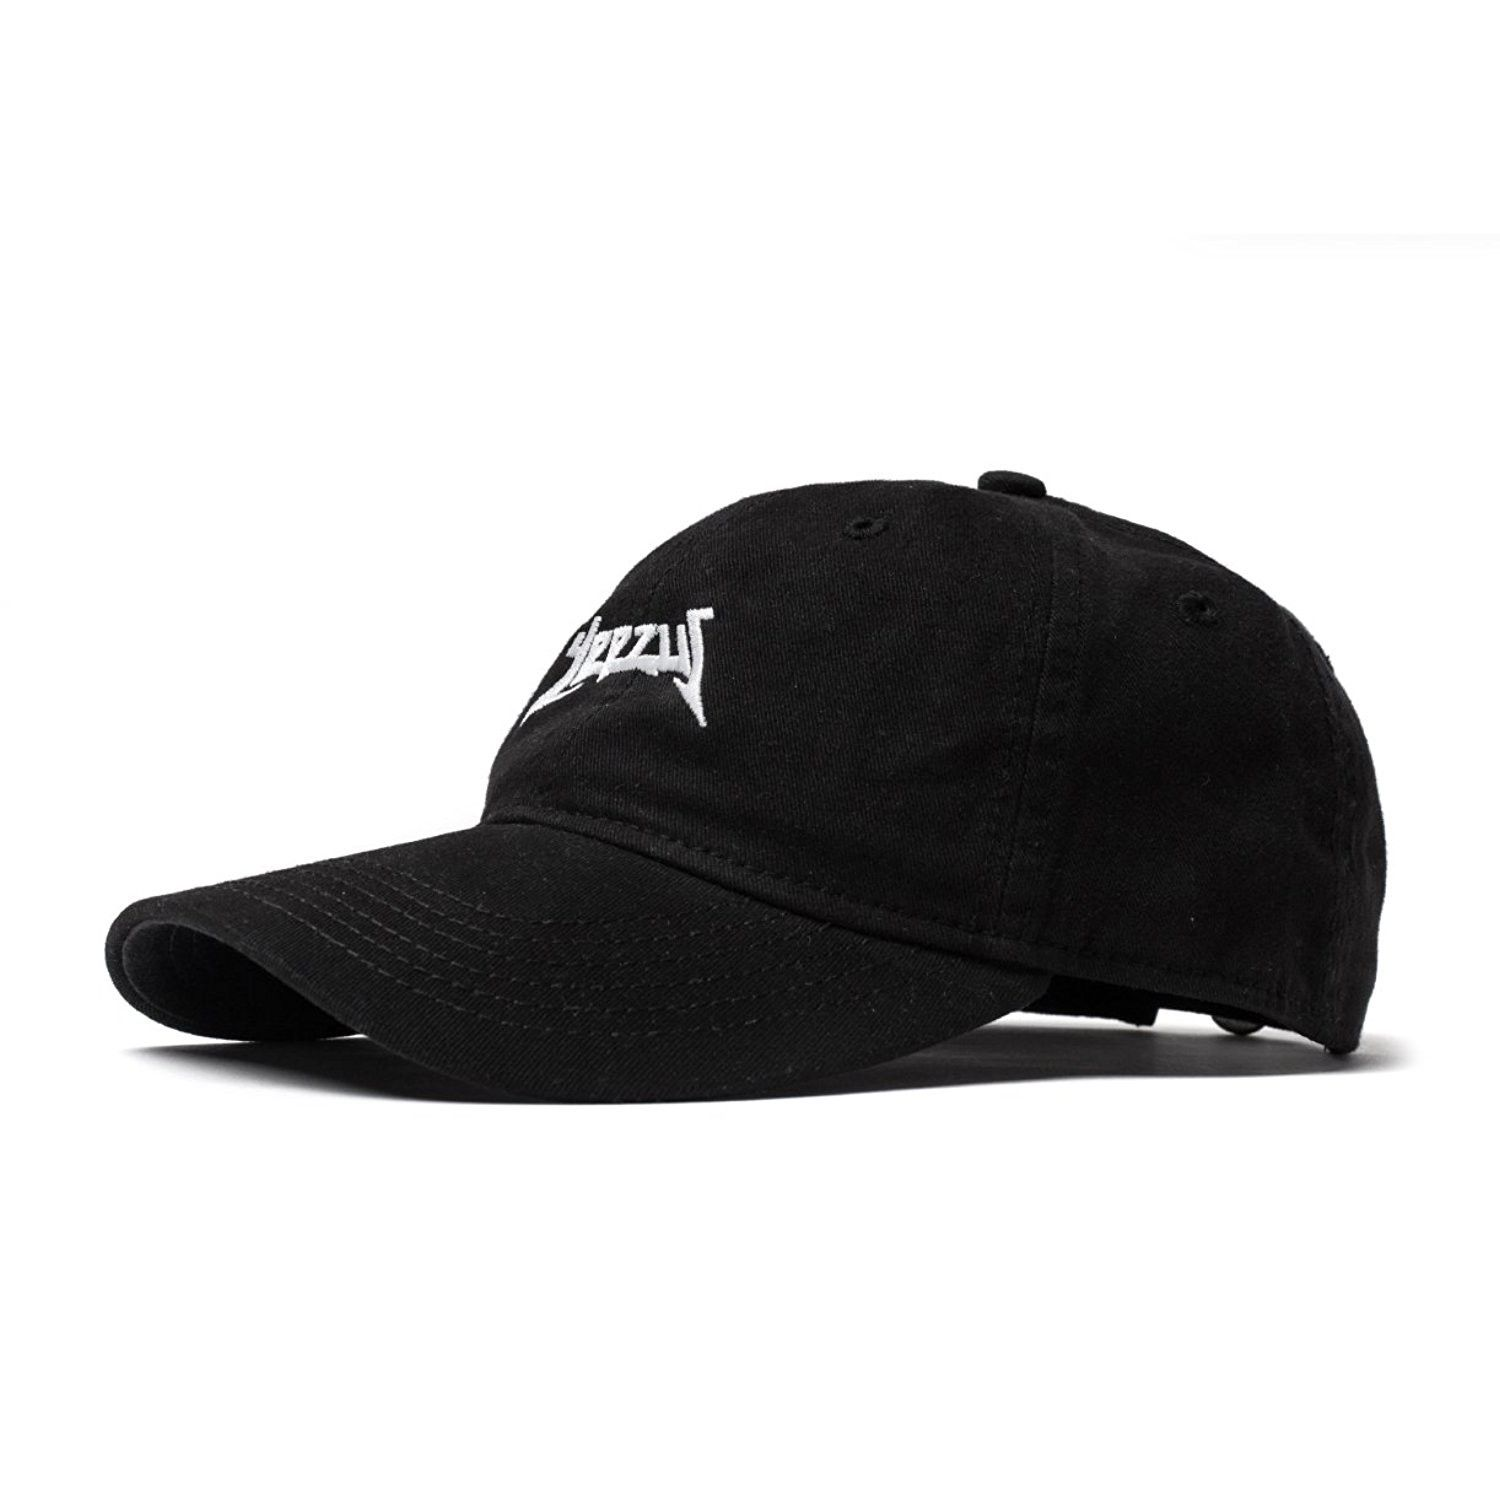 b057777ecb6d1 Yeezus Tour Glastonbury Dad Hat Kanye West Yeezy - Black - CA12OC2ZODI -  Hats   Caps